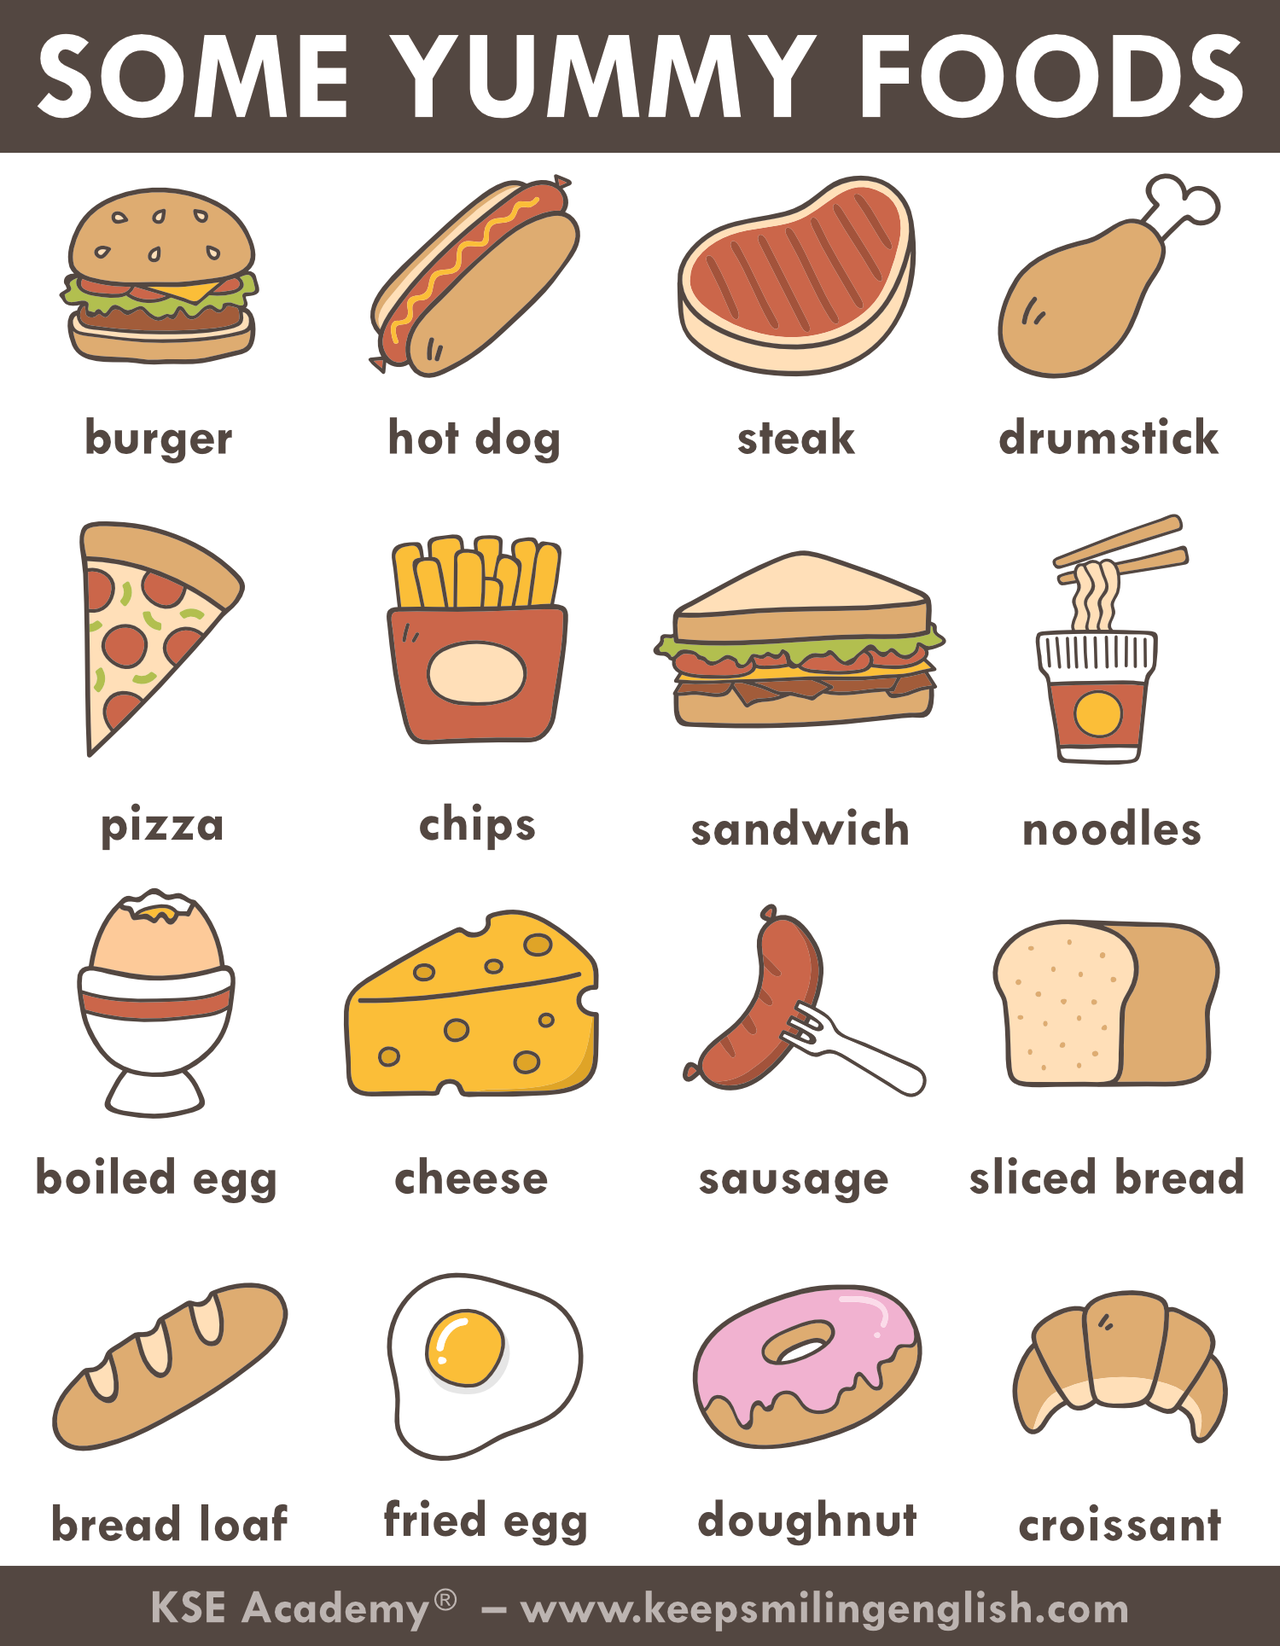 Just some yummy foods! 🤤 #food #vocabulary #yummyfood # ...